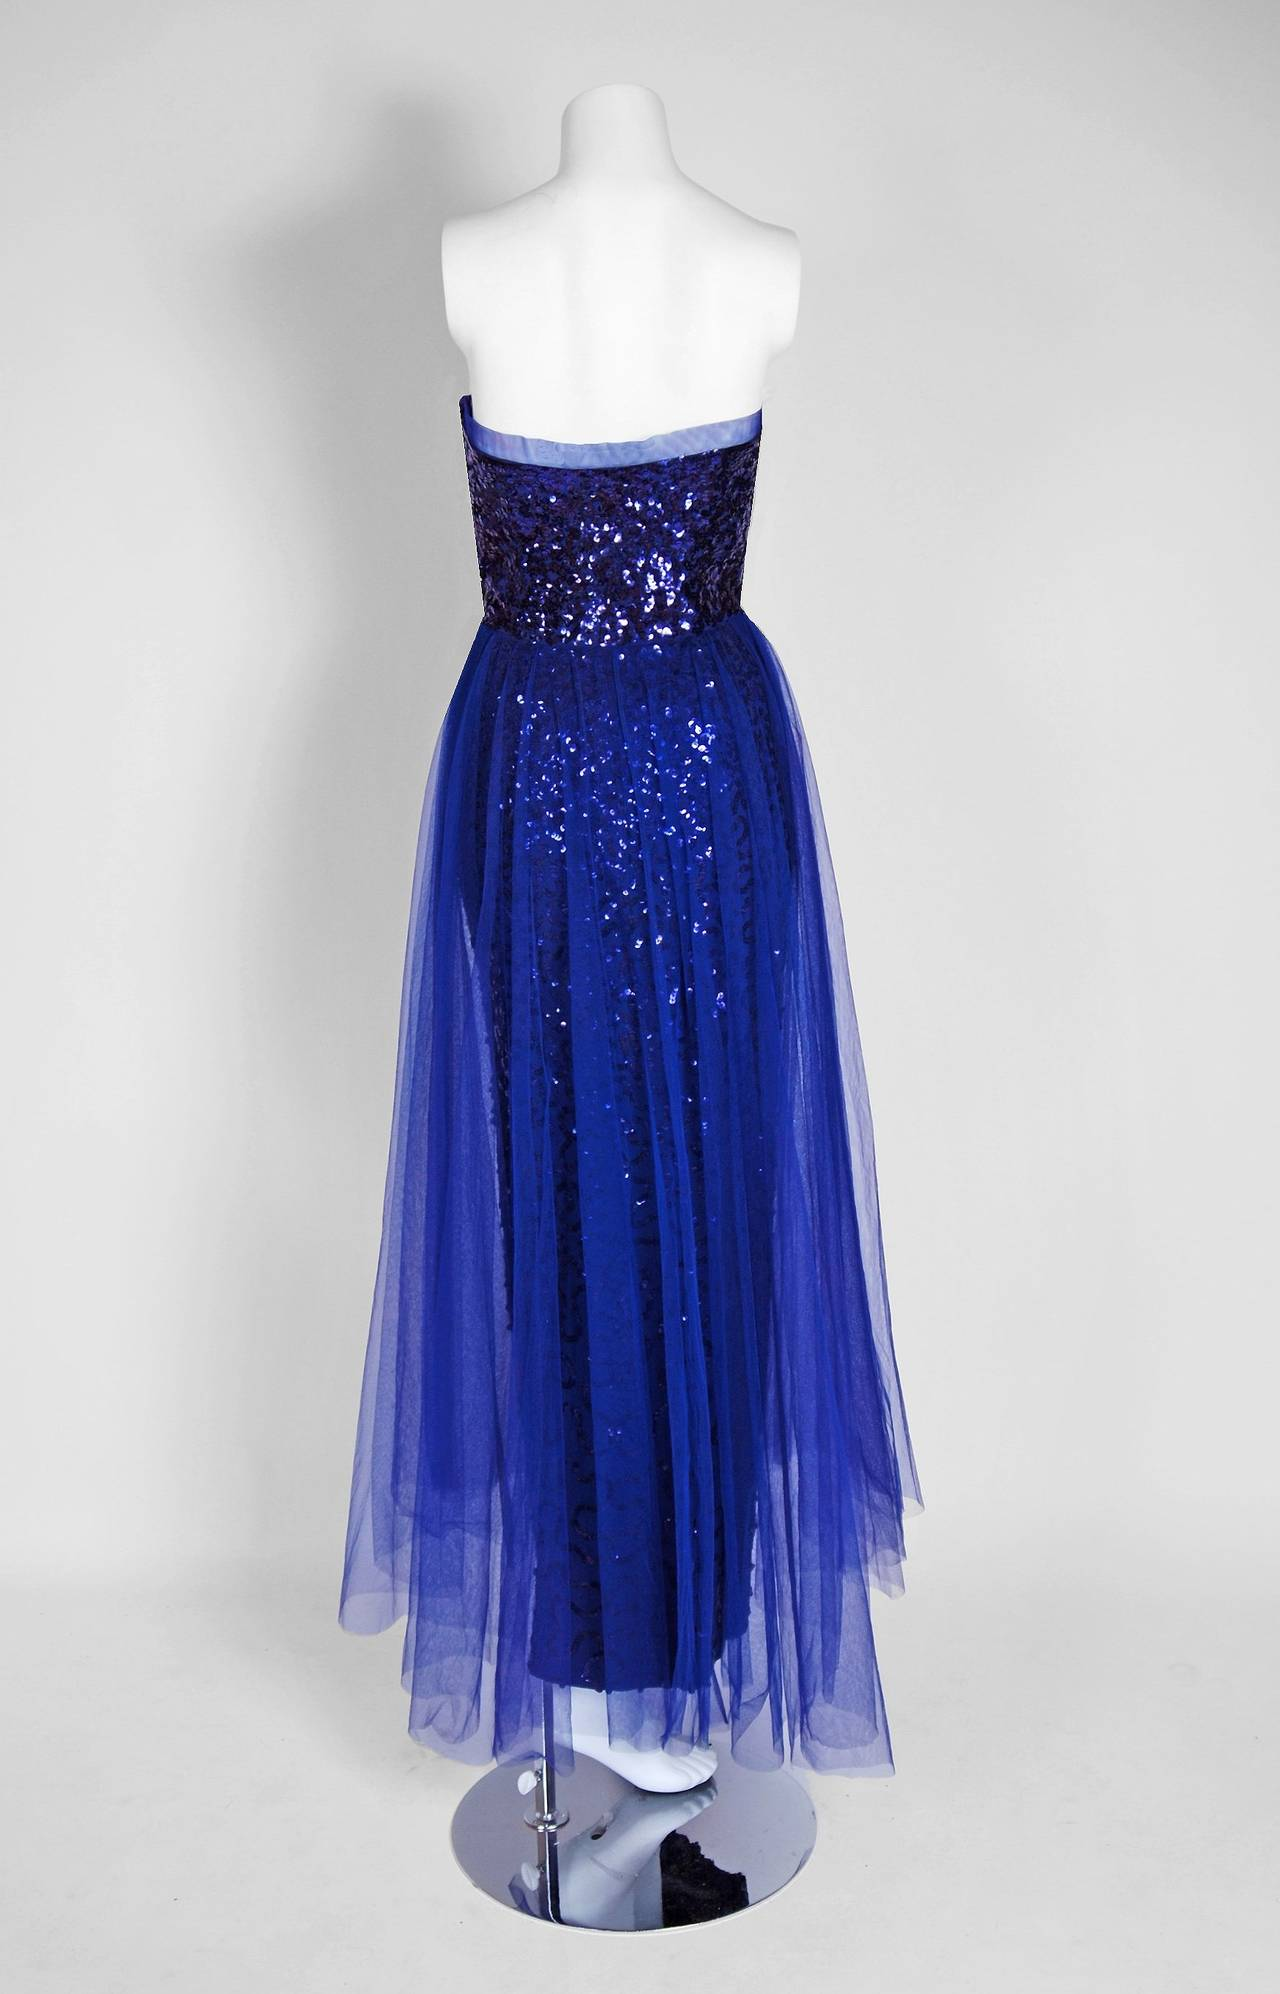 1950's Seductive Royal-Blue Sequin Rayon-Crepe Strapless Trained Evening Gown 5